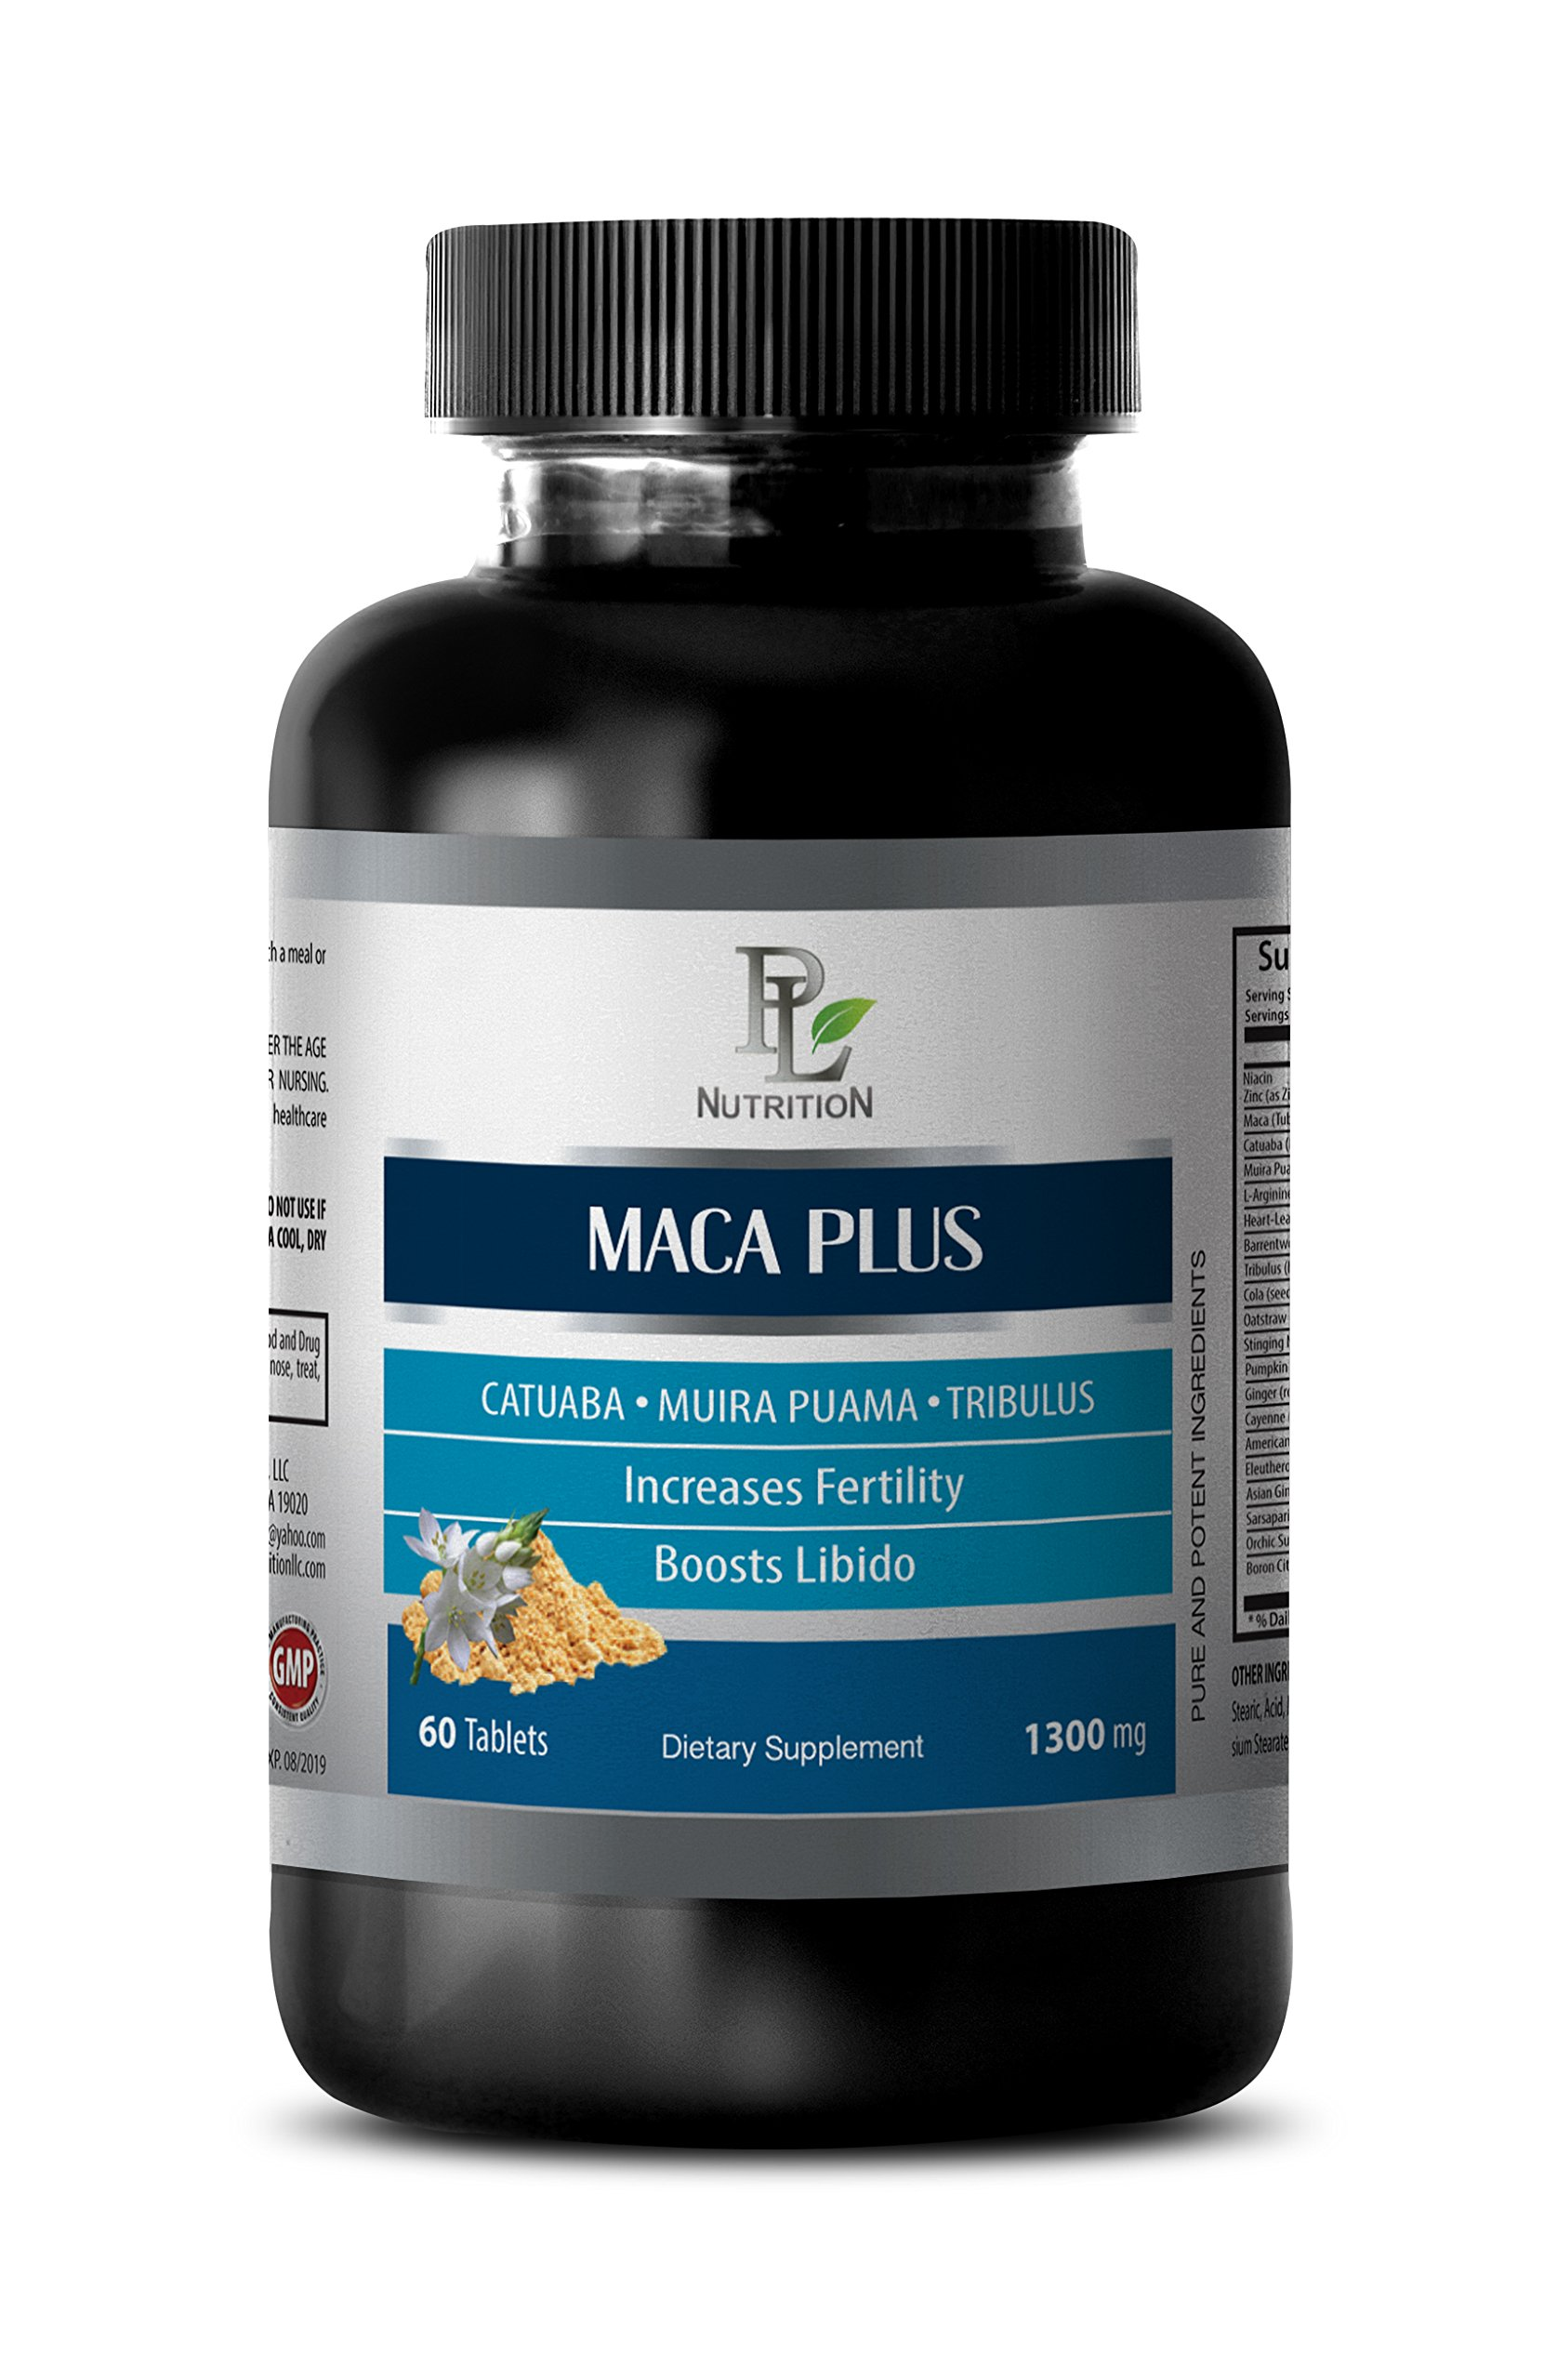 Libido boost - MACA PLUS - Maca powder - 1 Bottle 60 Tablets by PL NUTRITION